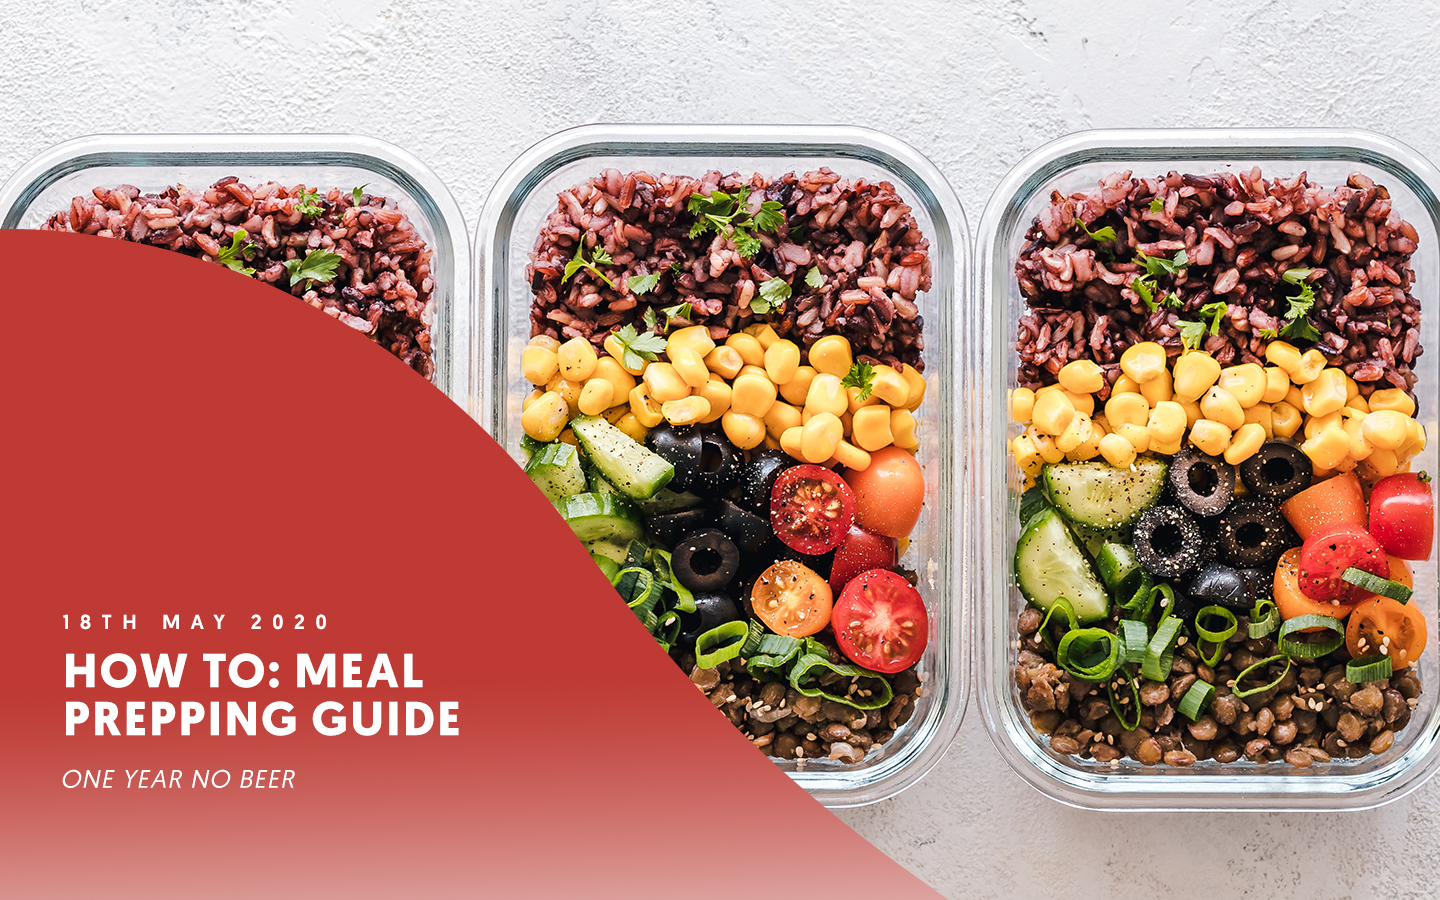 How to: meal prepping guide